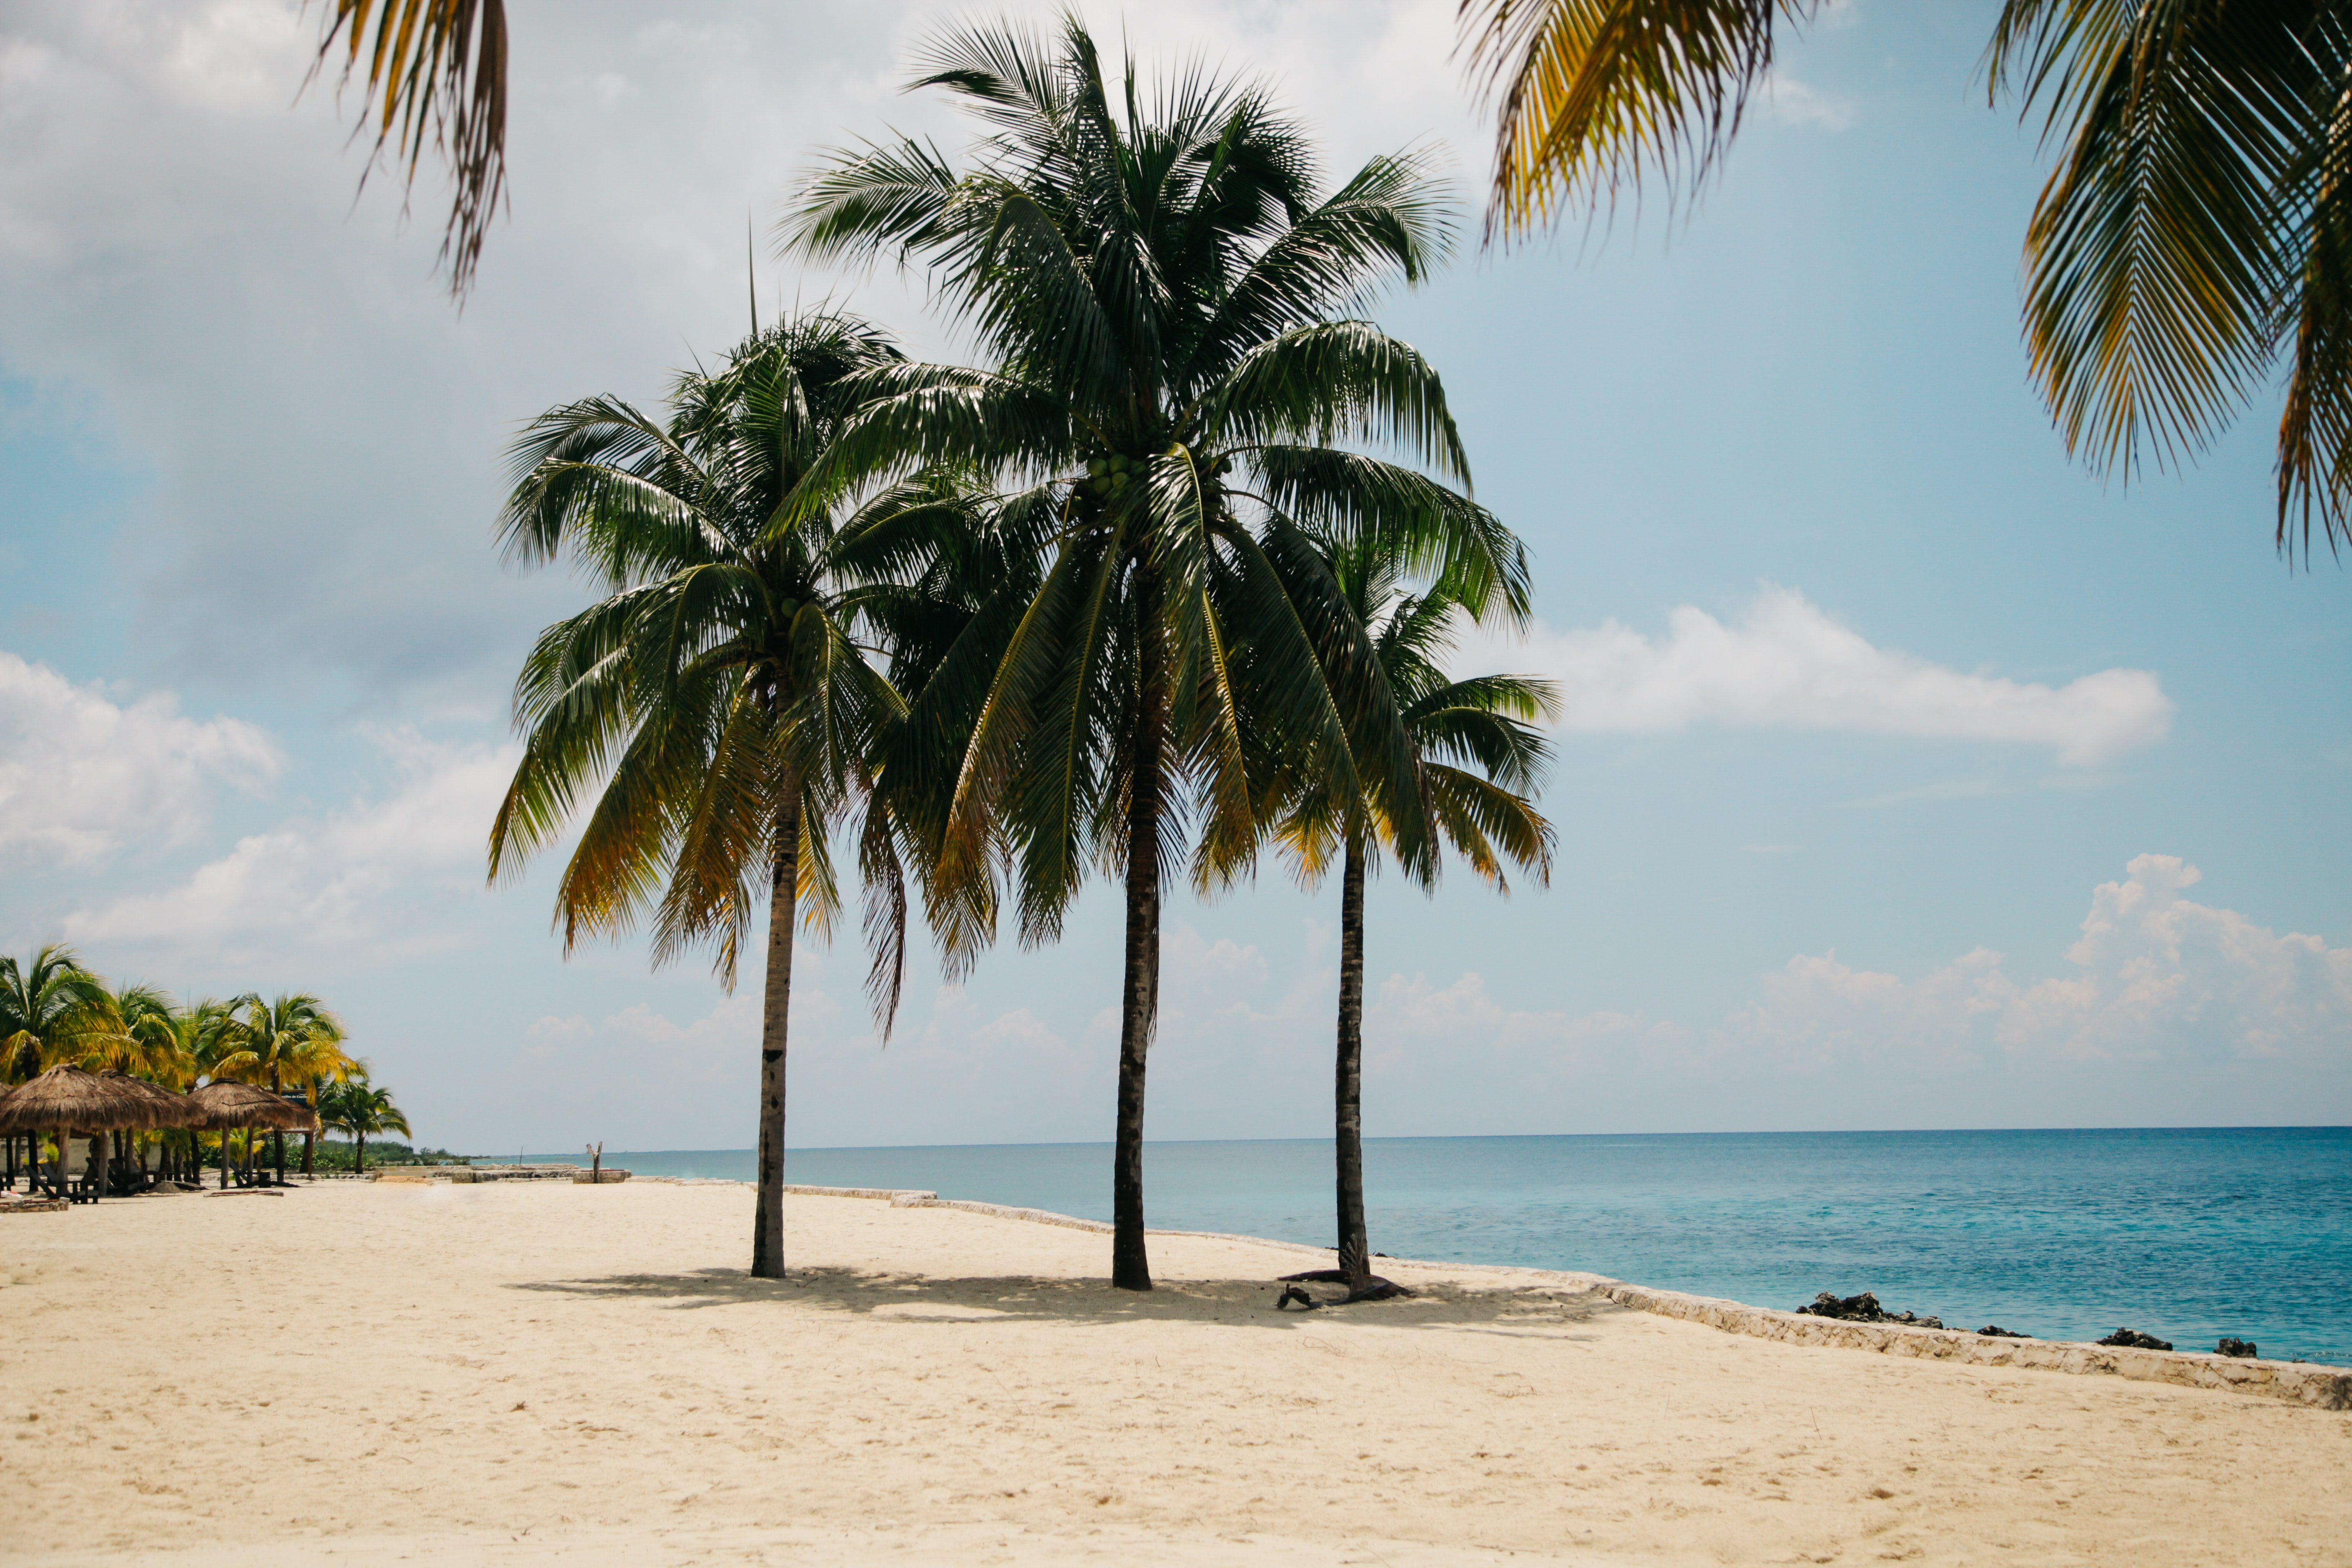 palm trees on beach on a sunny day